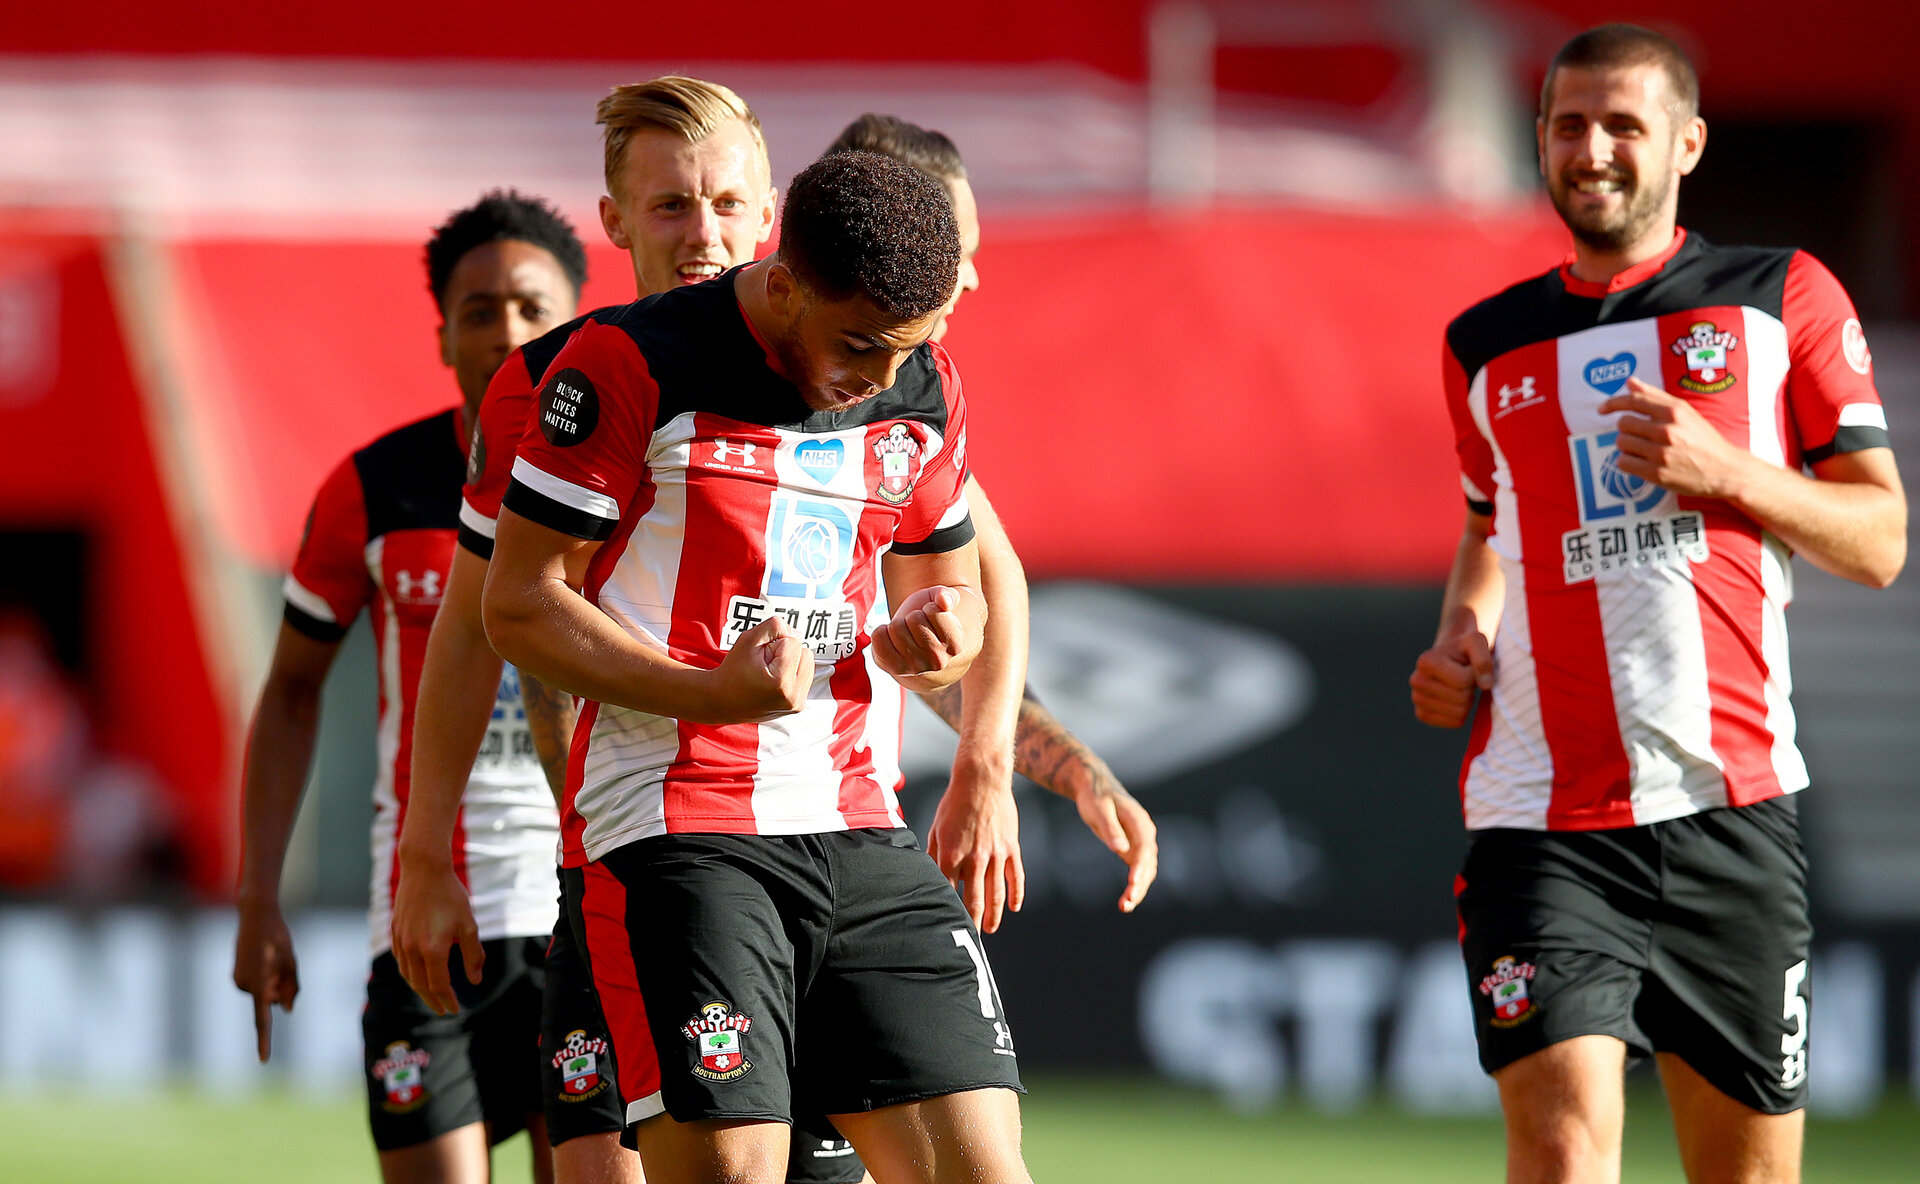 SOUTHAMPTON, ENGLAND - JULY 05: Ché Adams goial celebration during the Premier League match between Southampton FC and Manchester City at St Mary's Stadium on July 5, 2020 in Southampton, United Kingdom. Football Stadiums around Europe remain empty due to the Coronavirus Pandemic as Government social distancing laws prohibit fans inside venues resulting in games being played behind closed doors. (Photo by Matt Watson/Southampton FC via Getty Images)